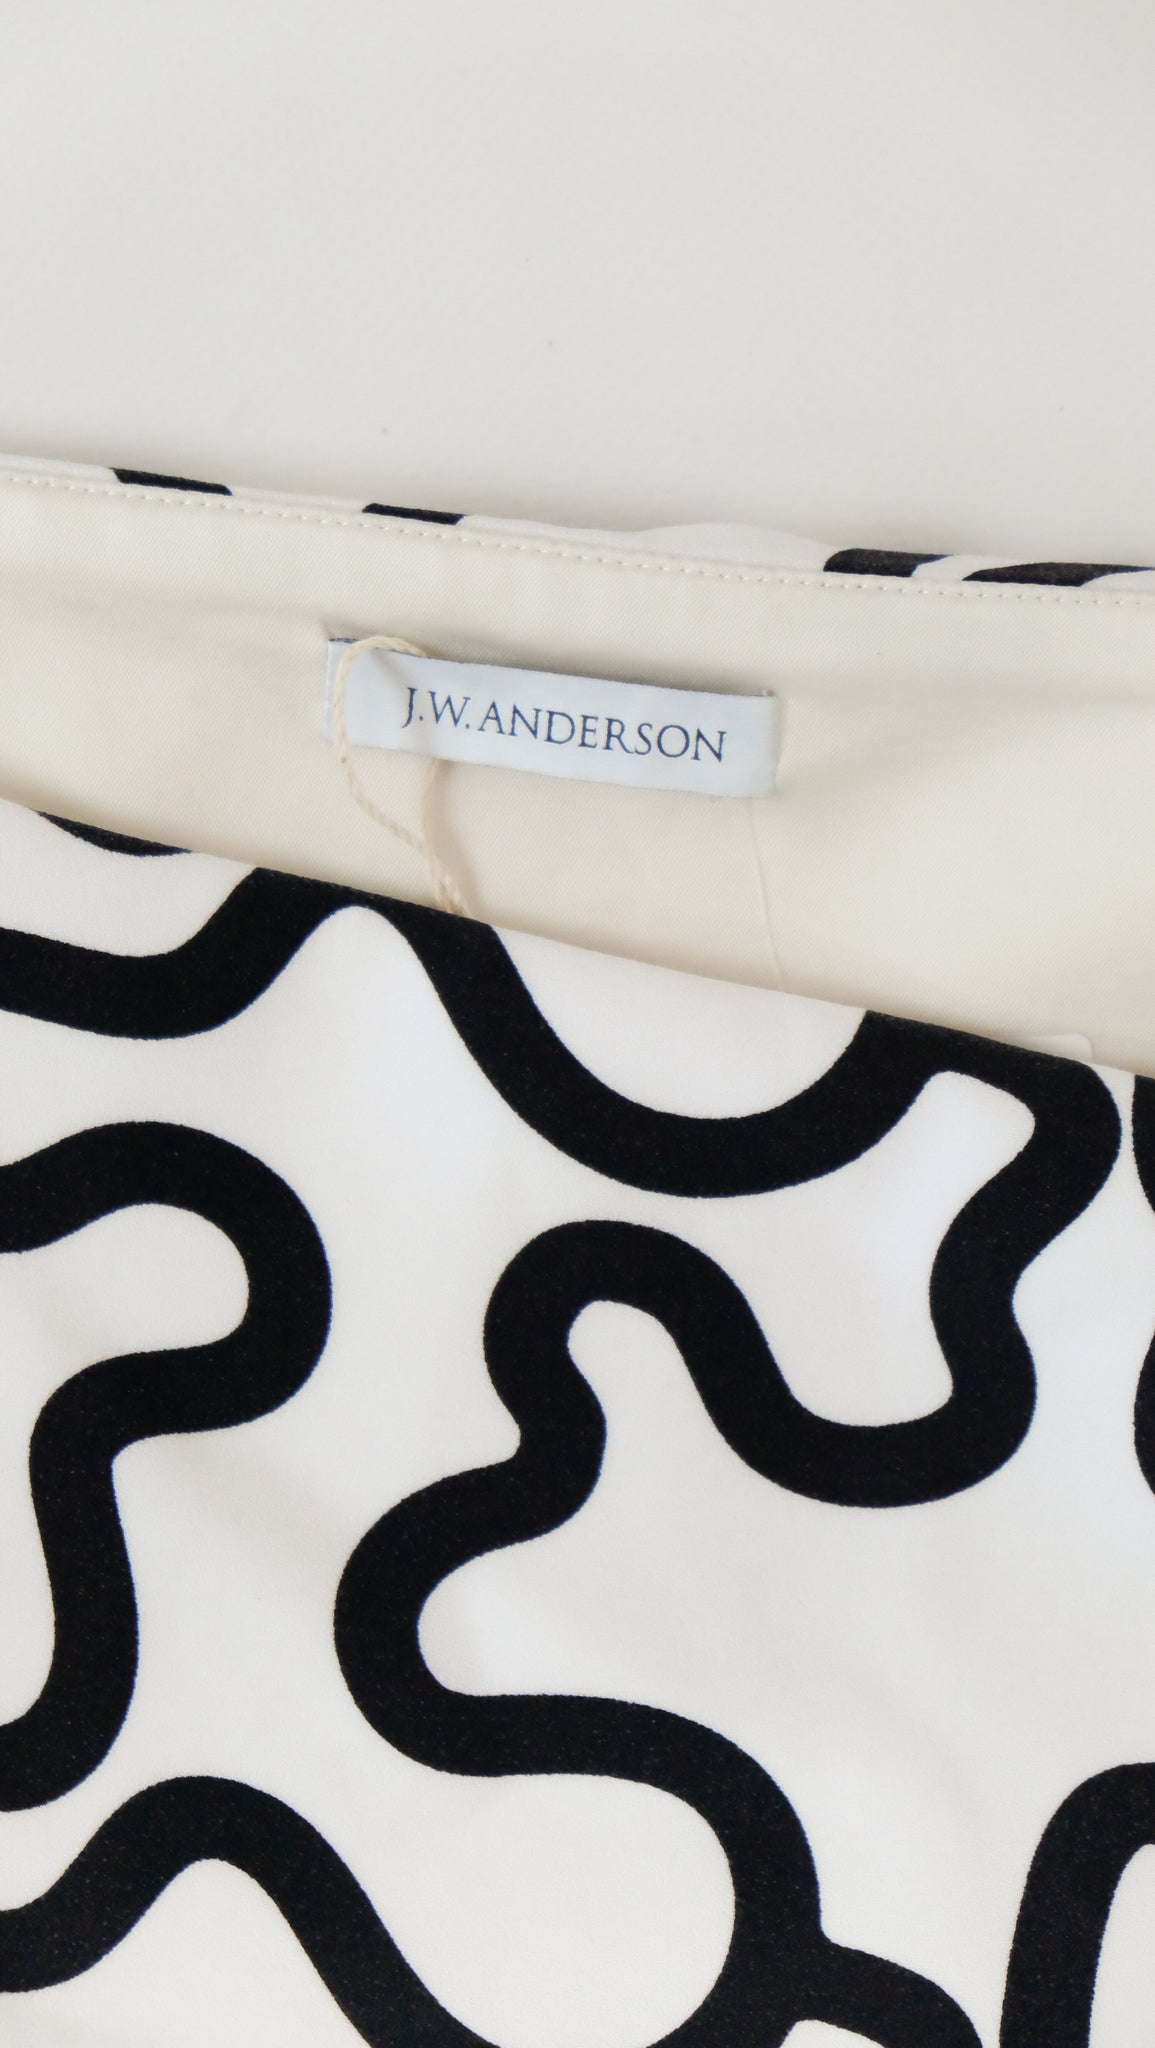 JW Anderson SS16 Cream Dress